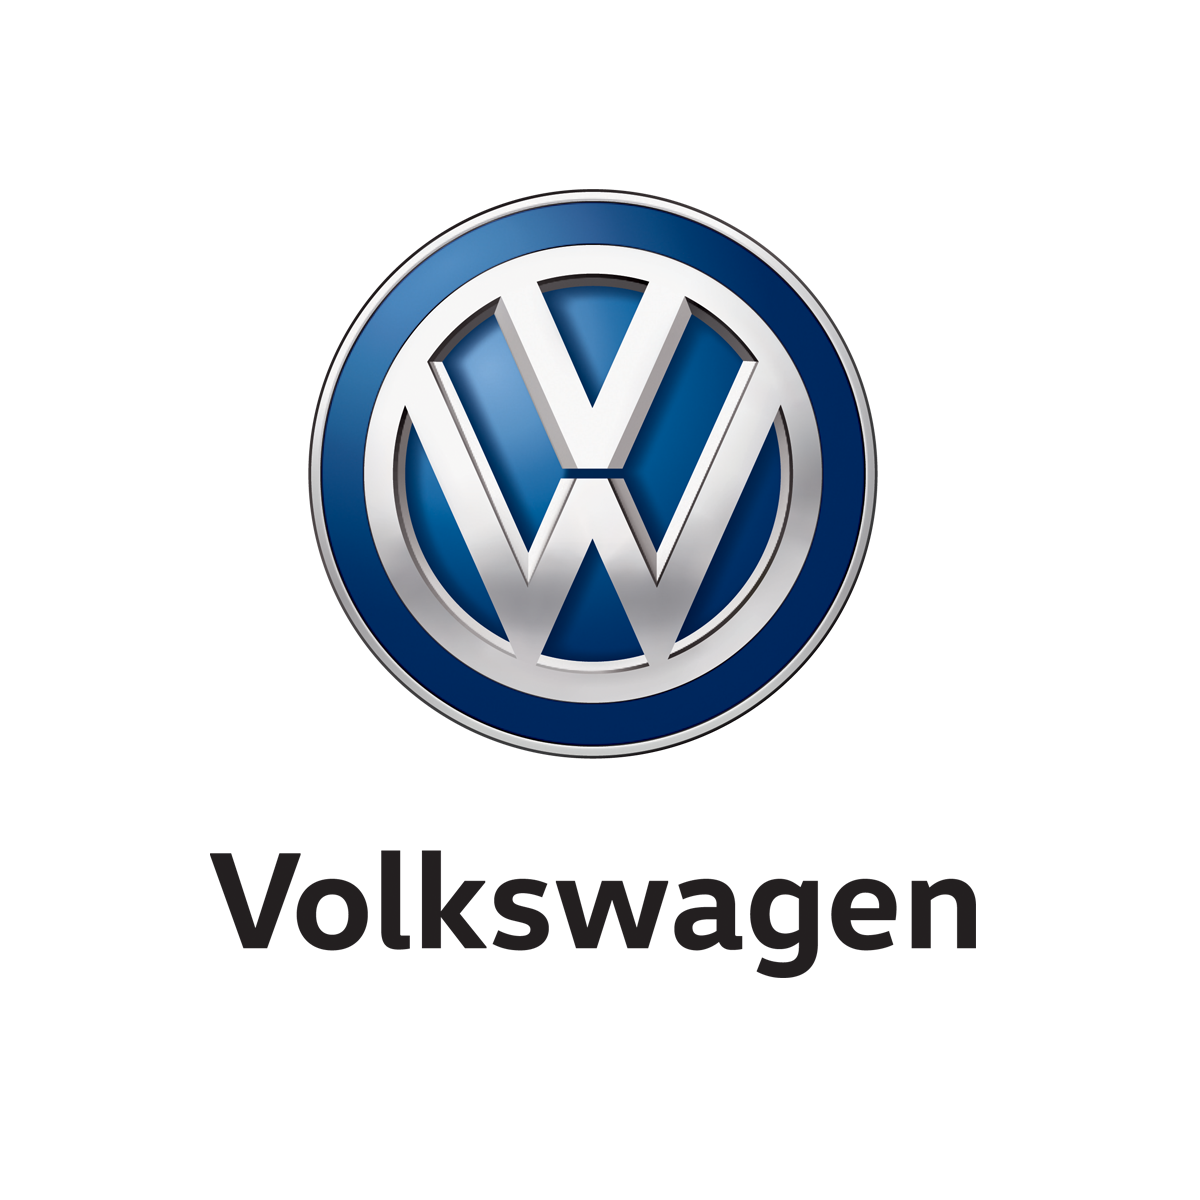 Vw-logo-large